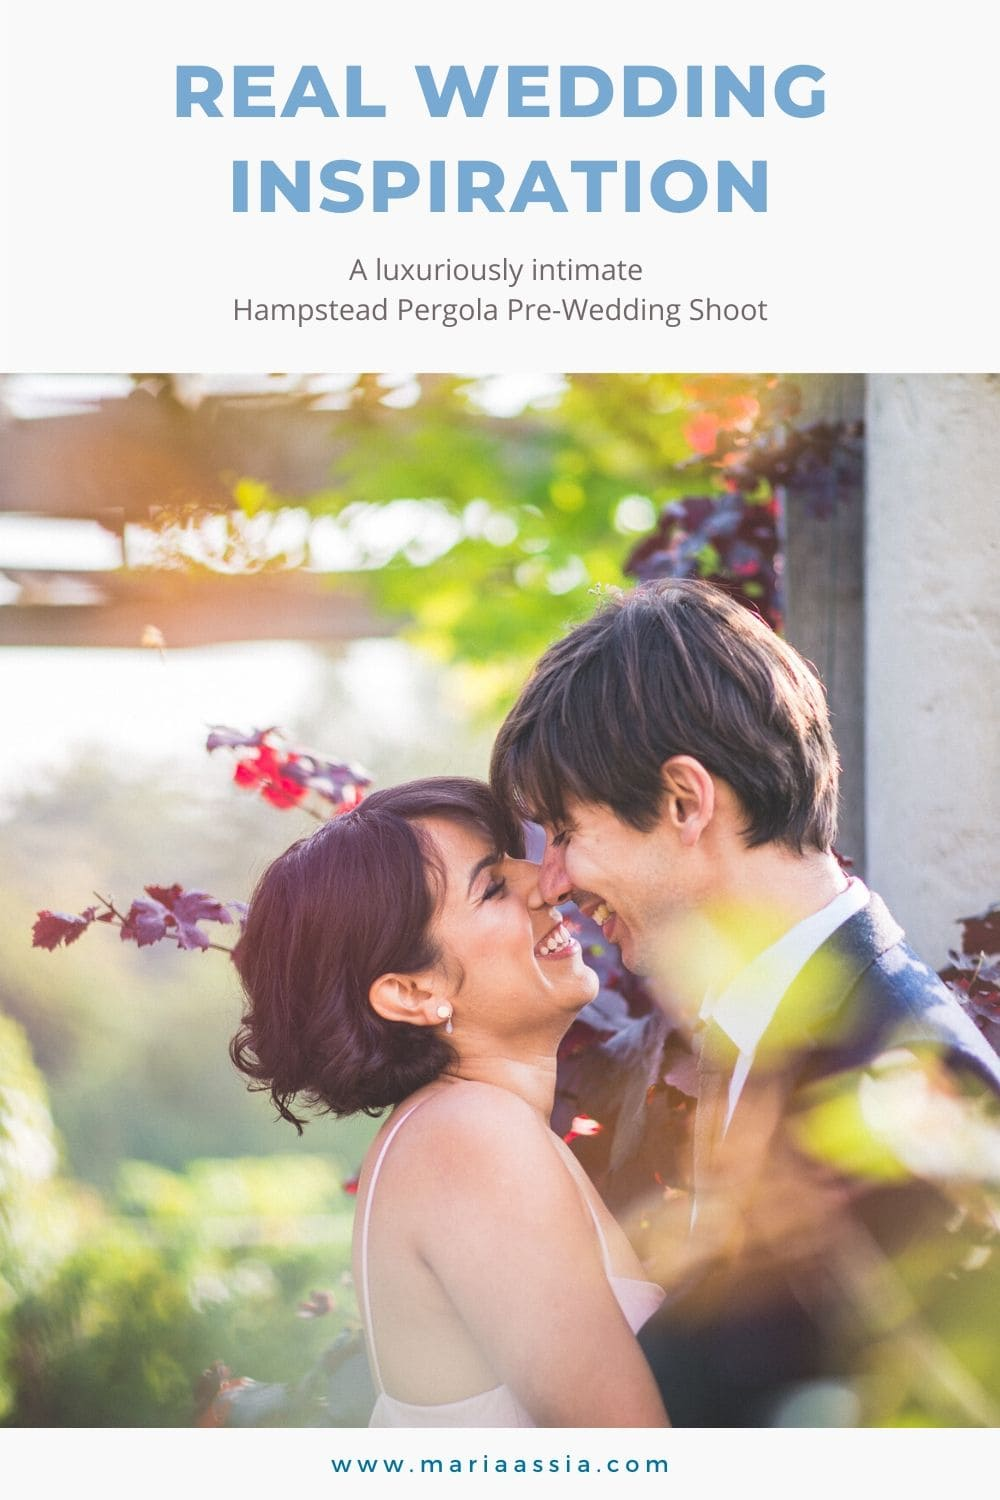 Real Wedding Inspiration for a luxuriously intimate Hampstead Pergola Pre-Wedding Shoot